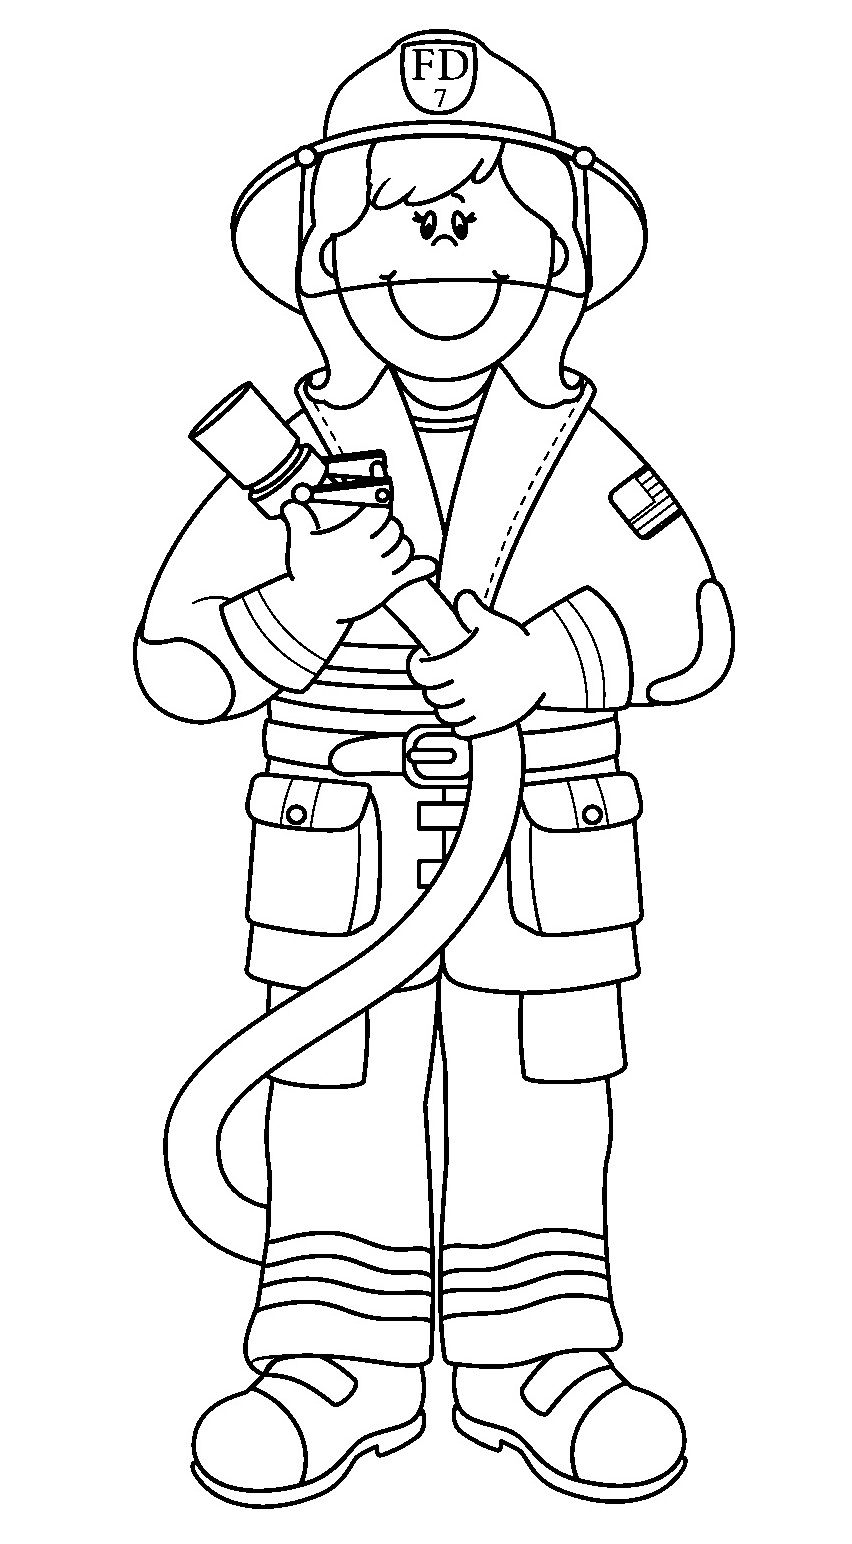 Dalmation Coloring Pages Pick A Color Fireman Coloring Page Pages ...